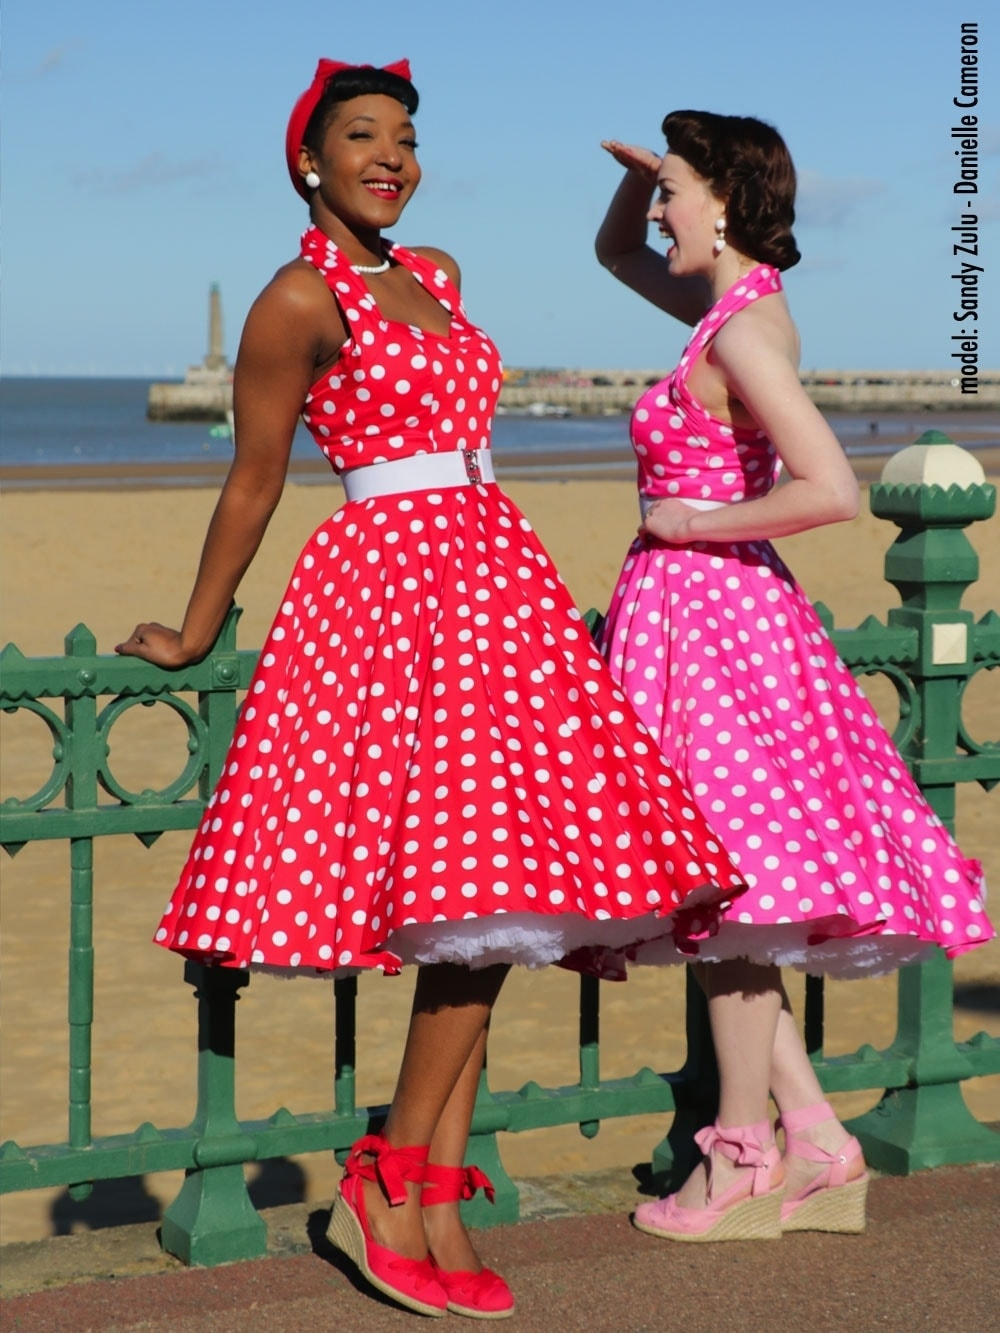 a7a2ee92626 1950s Halterneck Red White Polkadot Dress from Vivien of Holloway